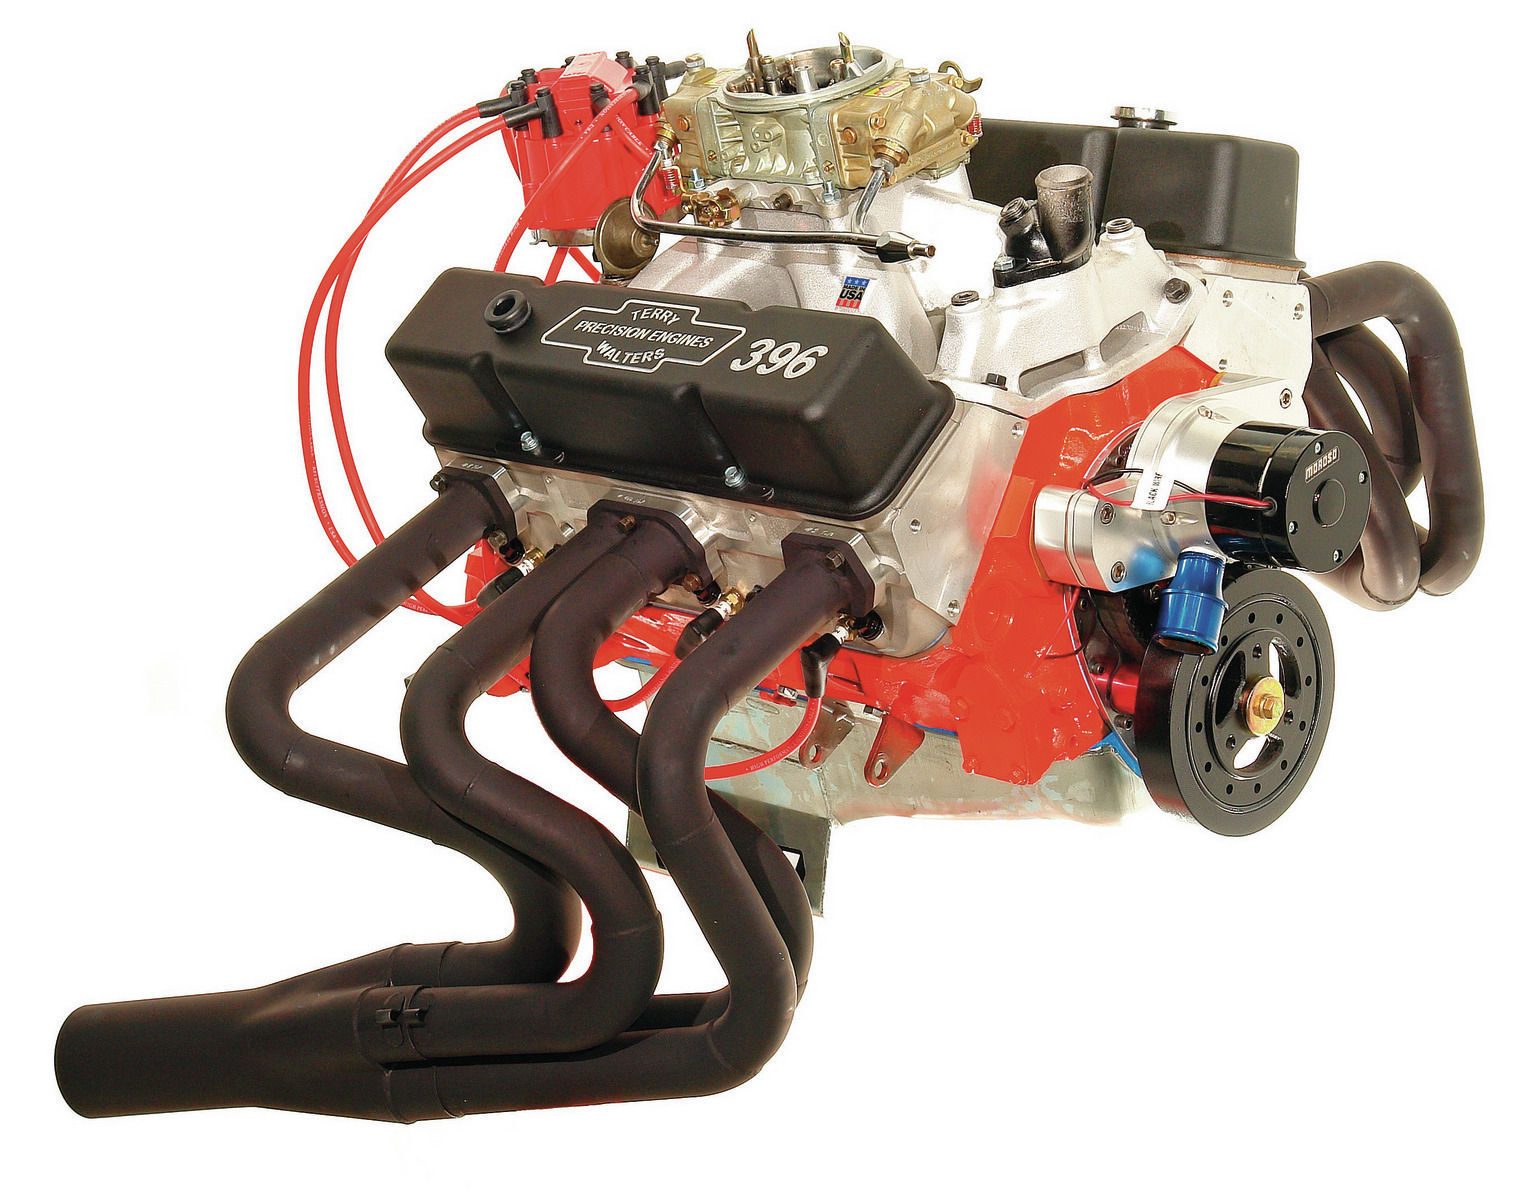 1102chp 01 O 396ci Small Block